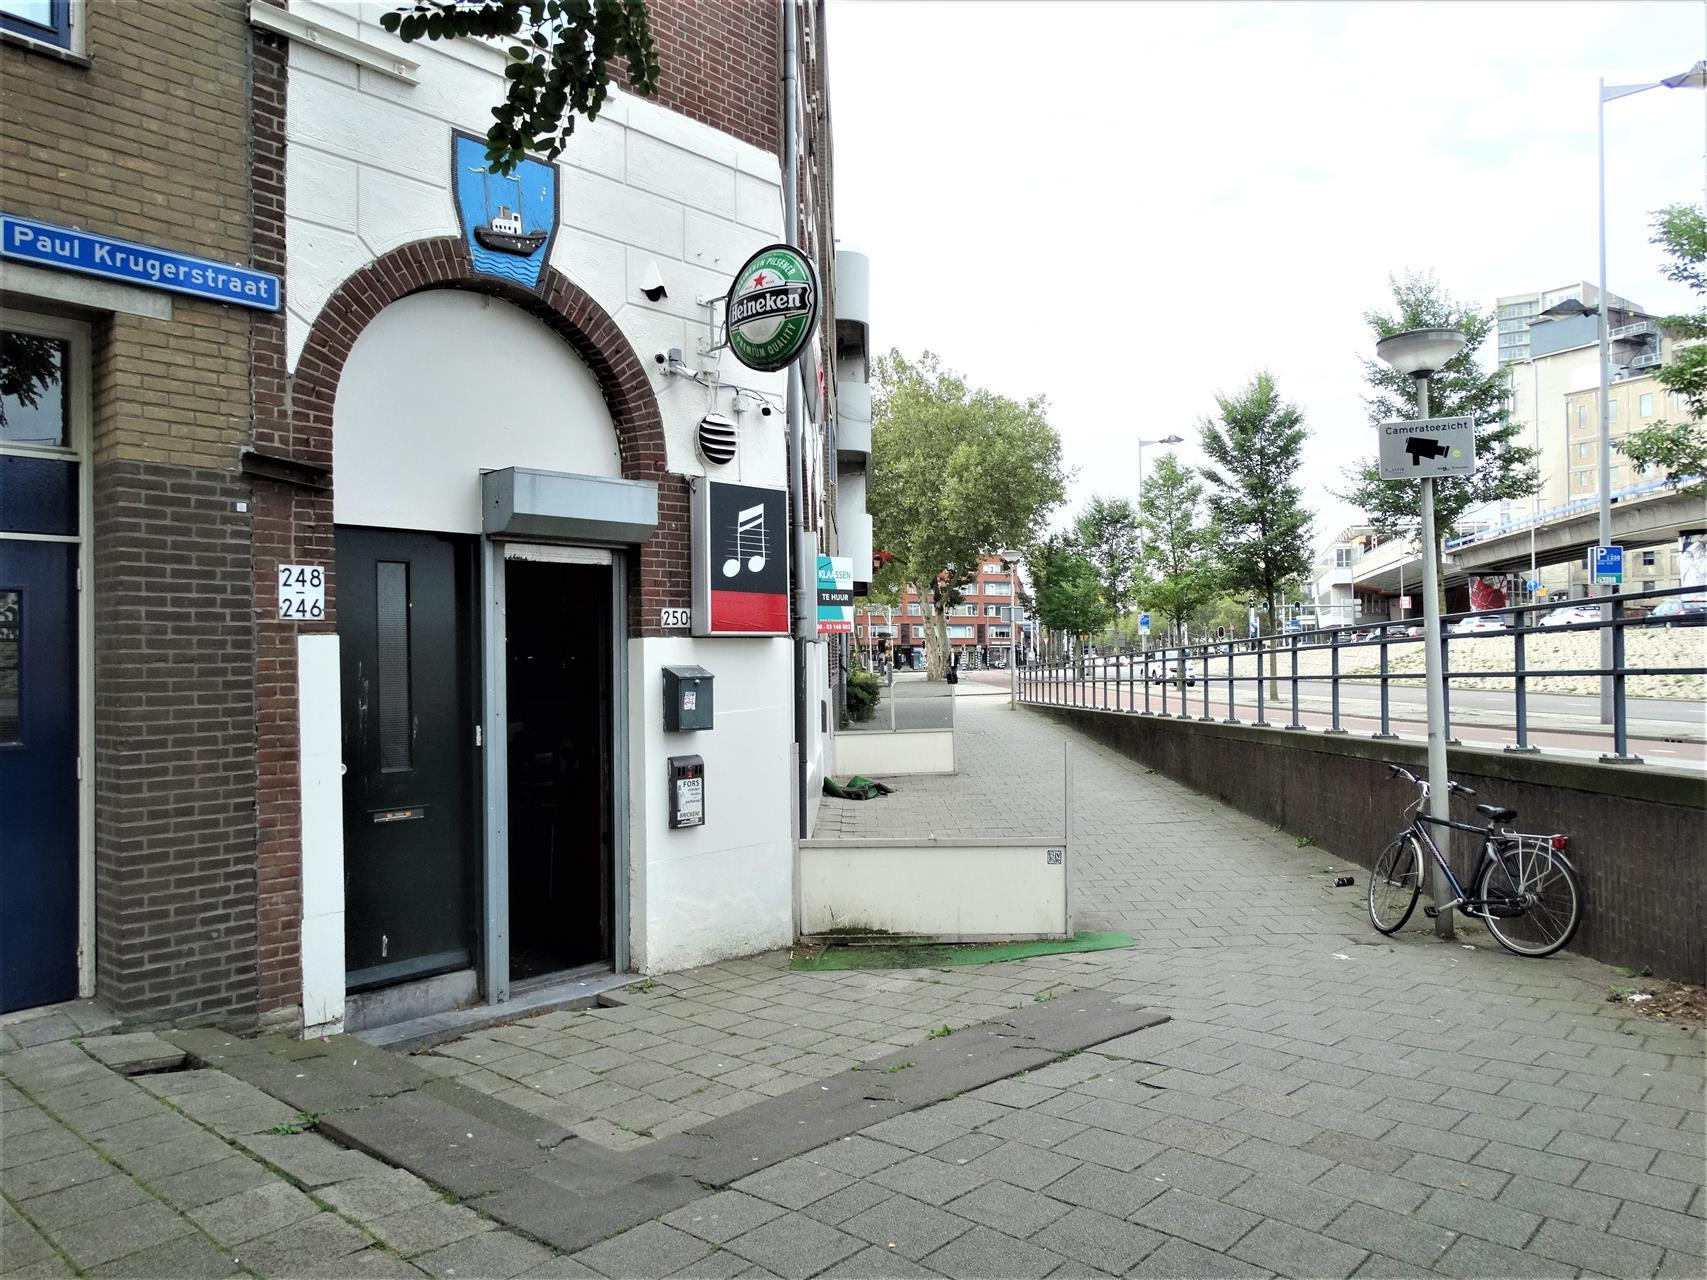 Paul Krugerstraat 250